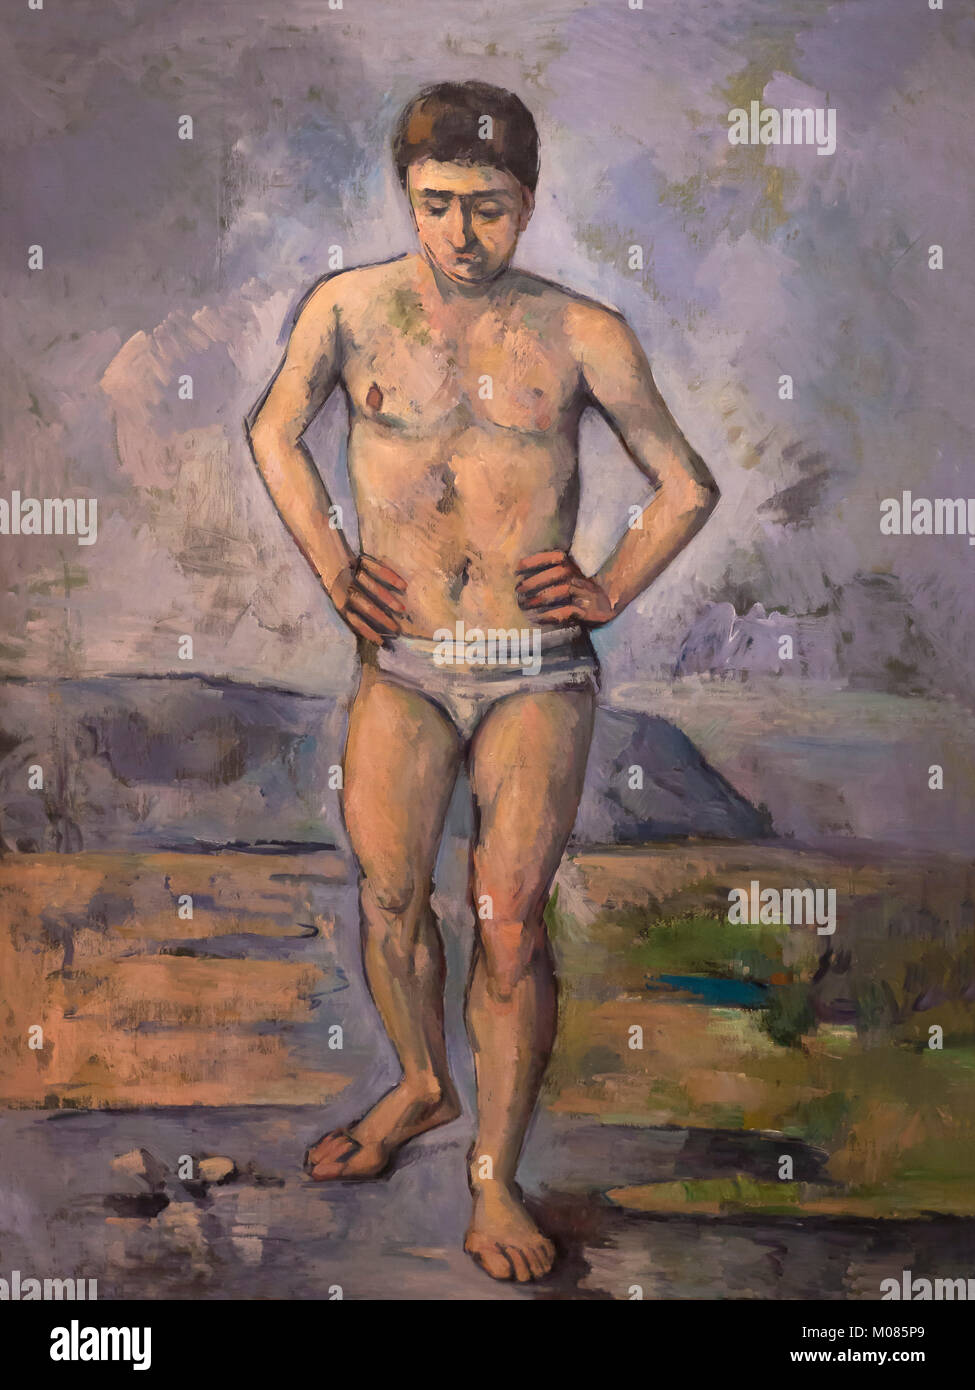 The Bather, Paul Cezanne, circa 1885, - Stock Image